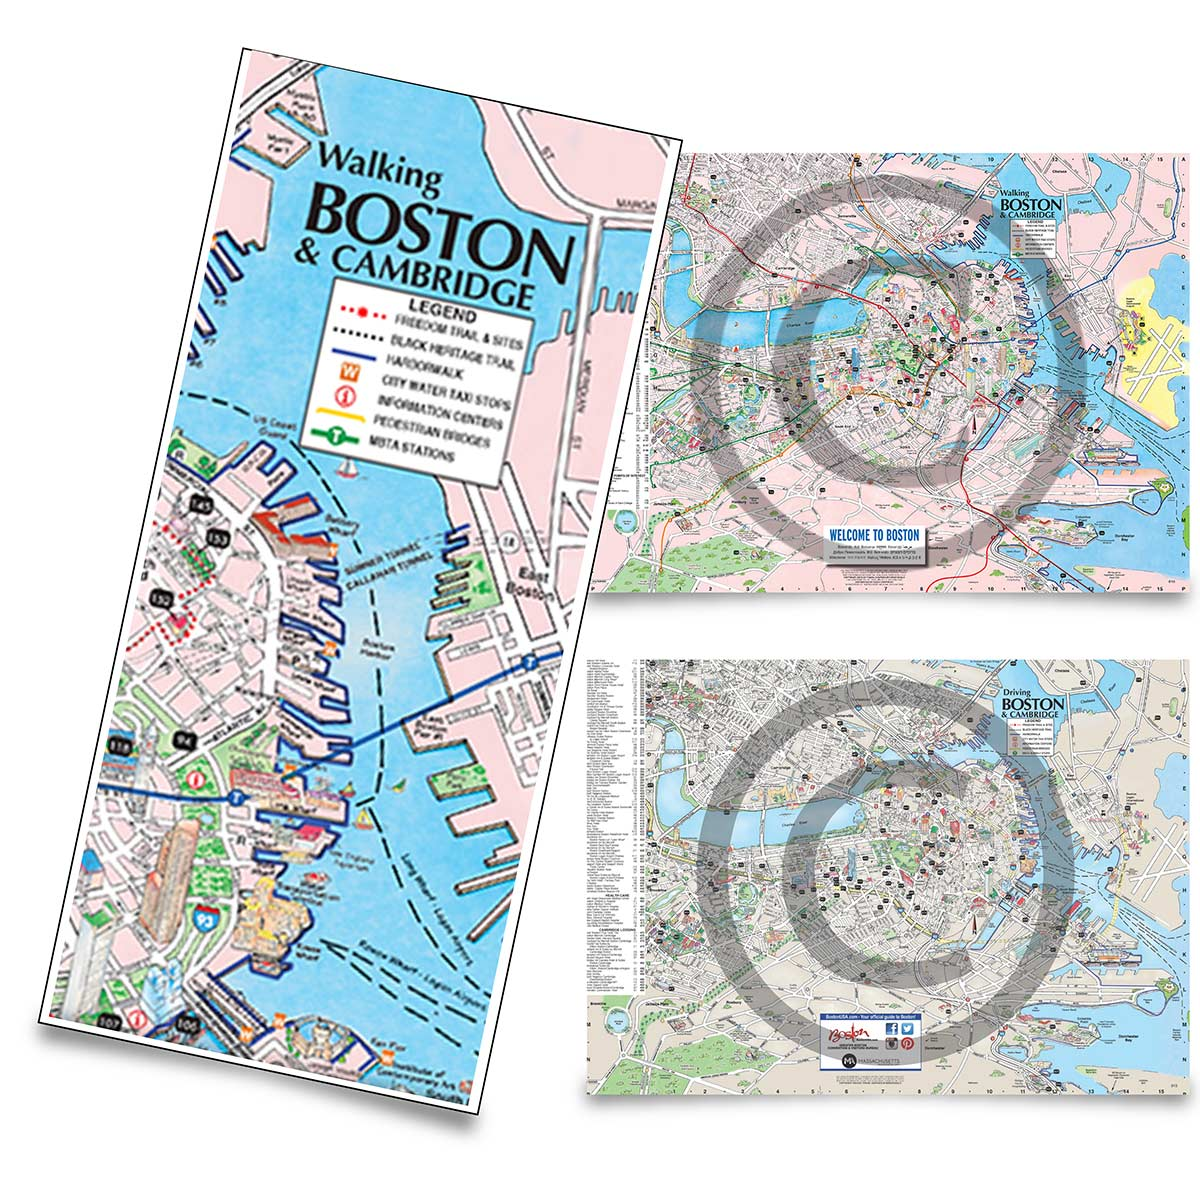 Buy Boston Walking Driving maps online Boston tourist maps